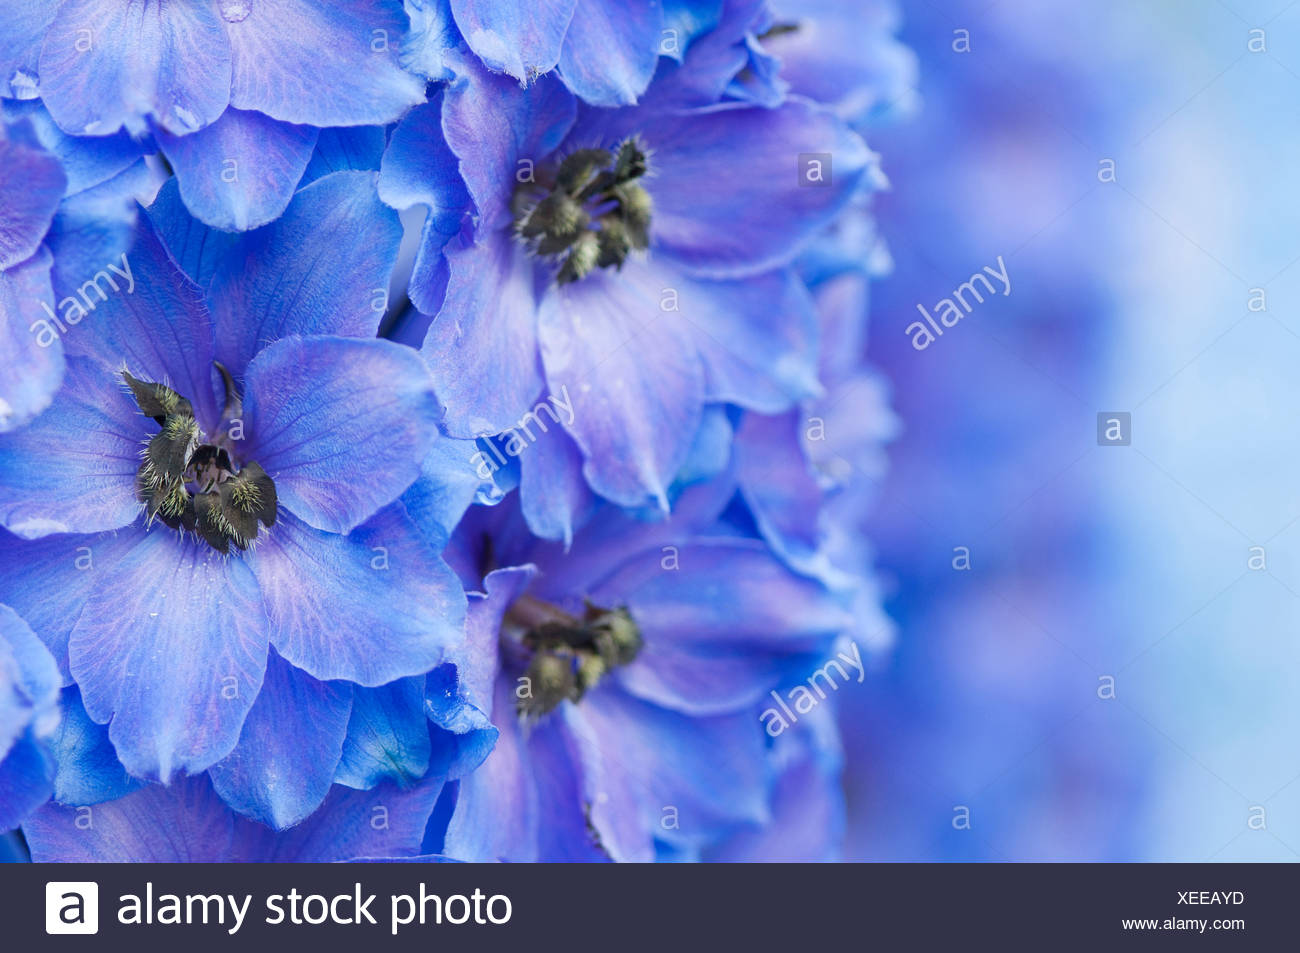 Close-up of vivid blue flowers of  Delphinium 'After Midnight'. - Stock Image